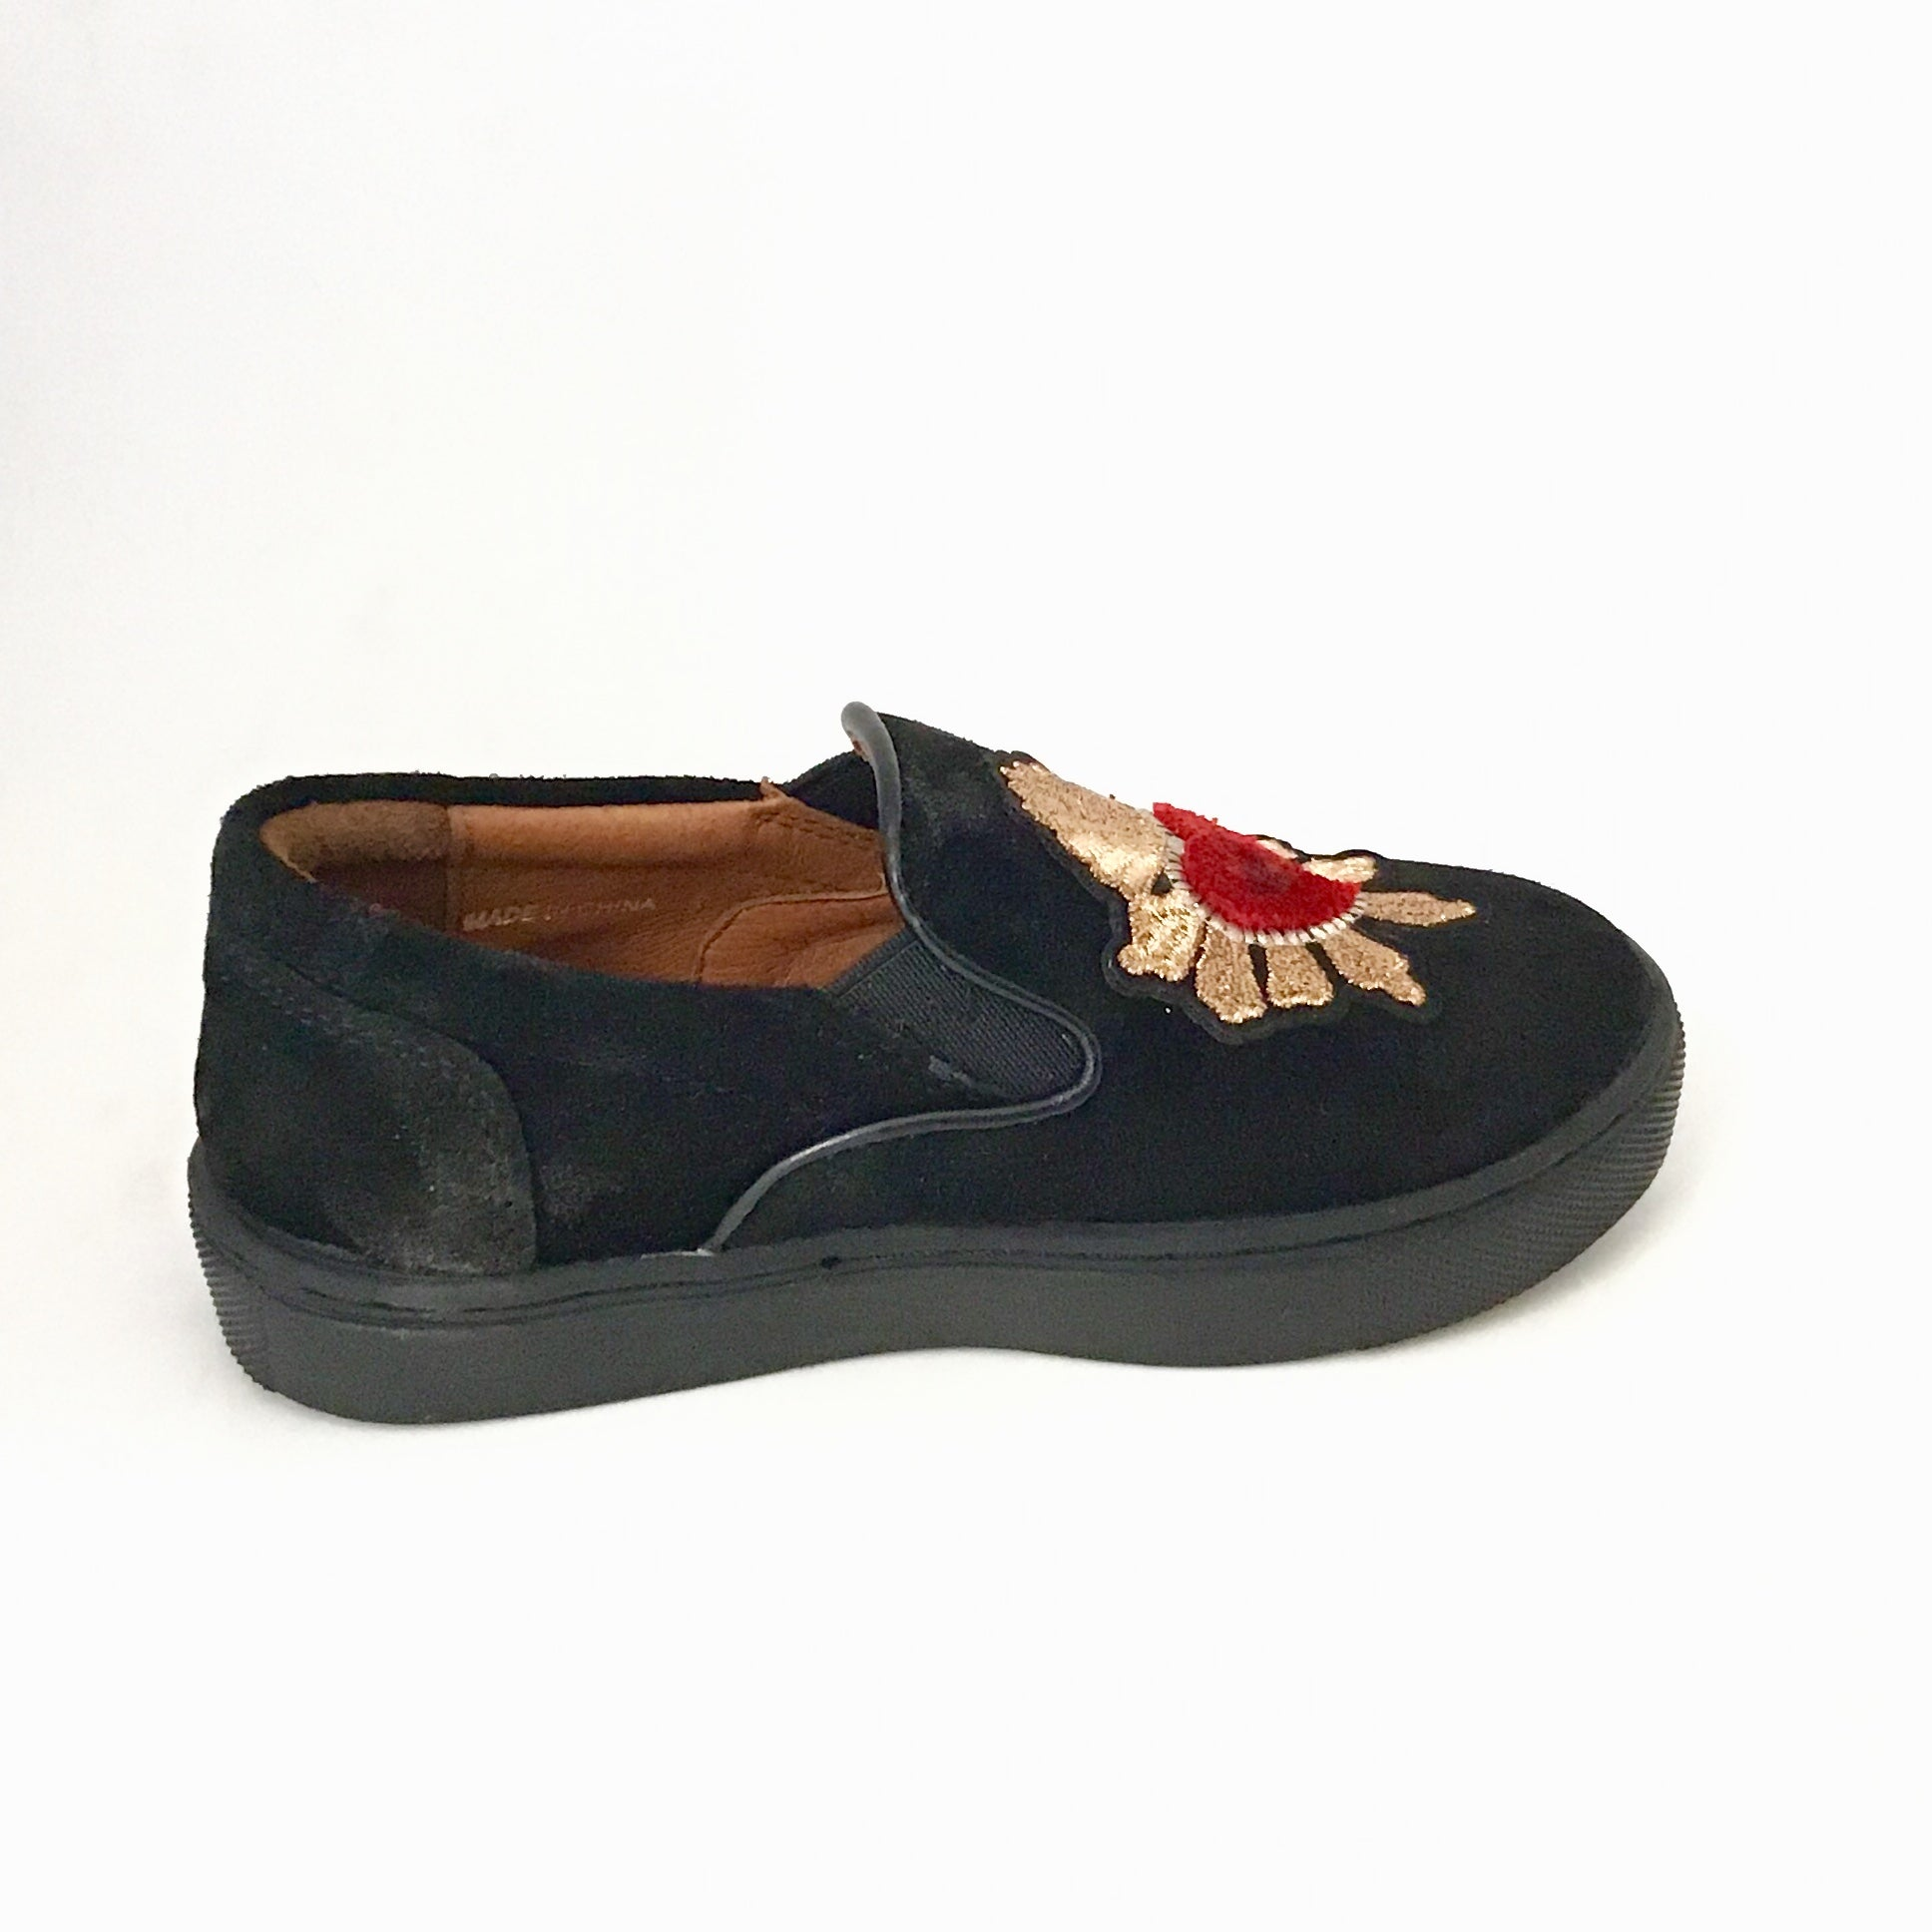 Venettini Black Suede Sneaker With Heart